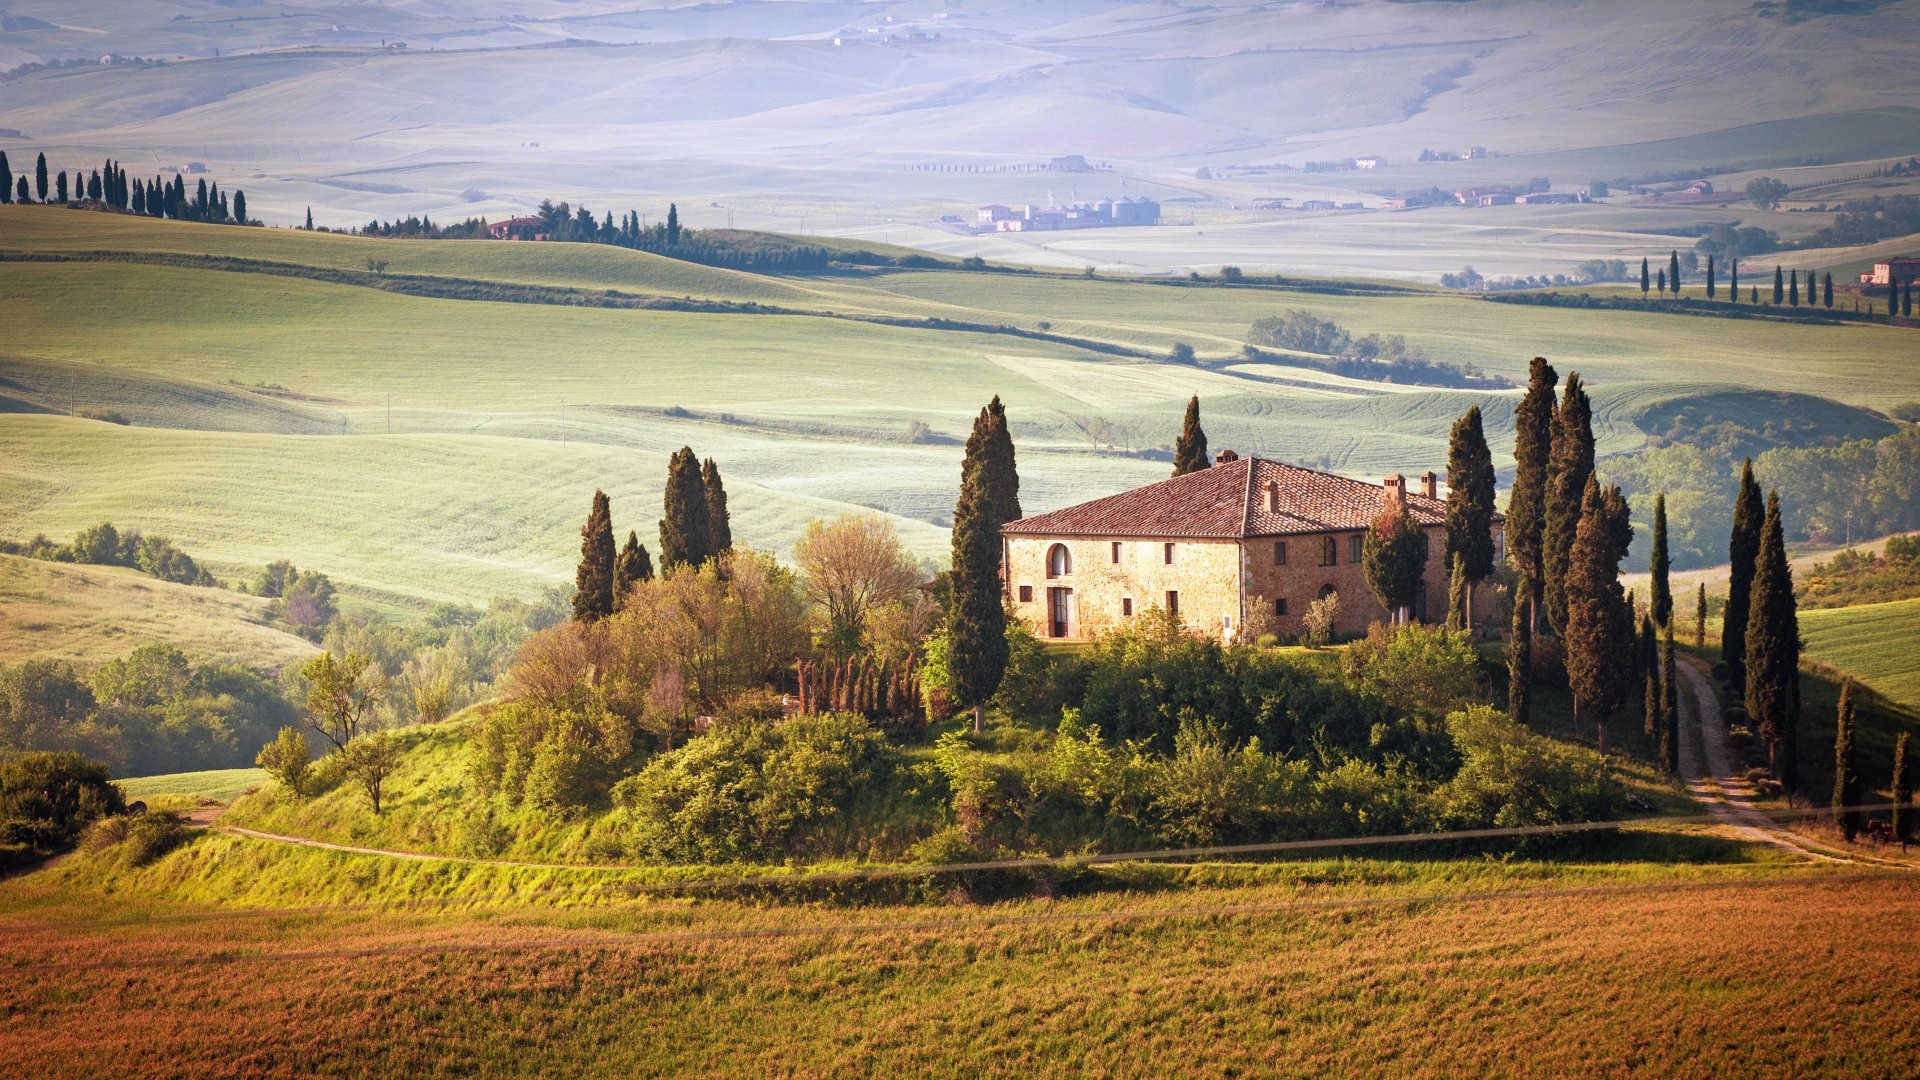 Summer in Tuscany, Italy Wallpaper for Desktop 1920x1080